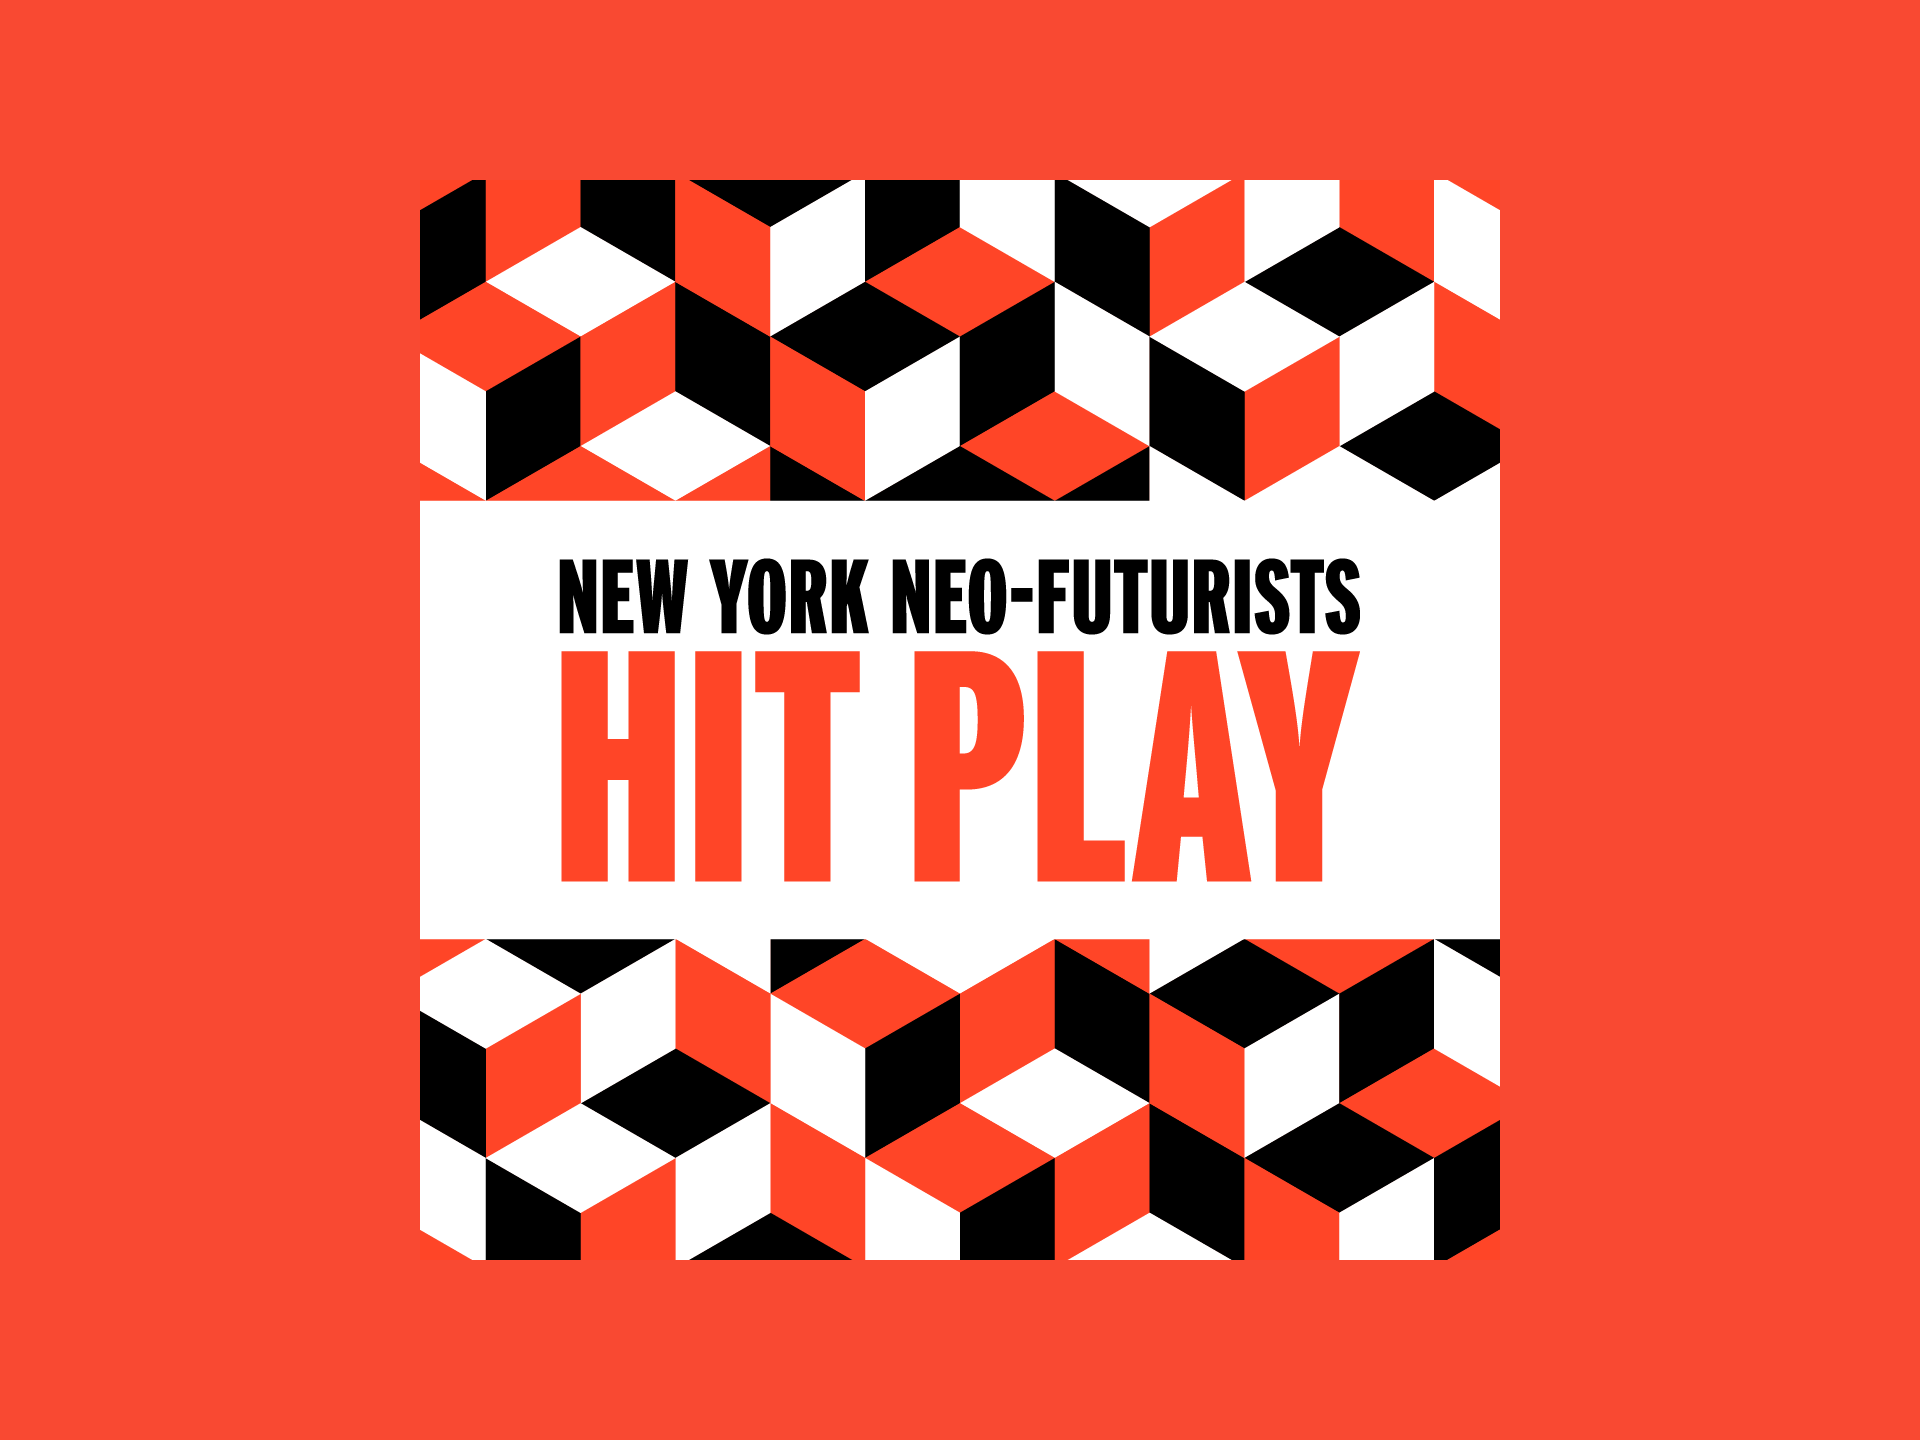 New York Neo-Futurists Concept 1